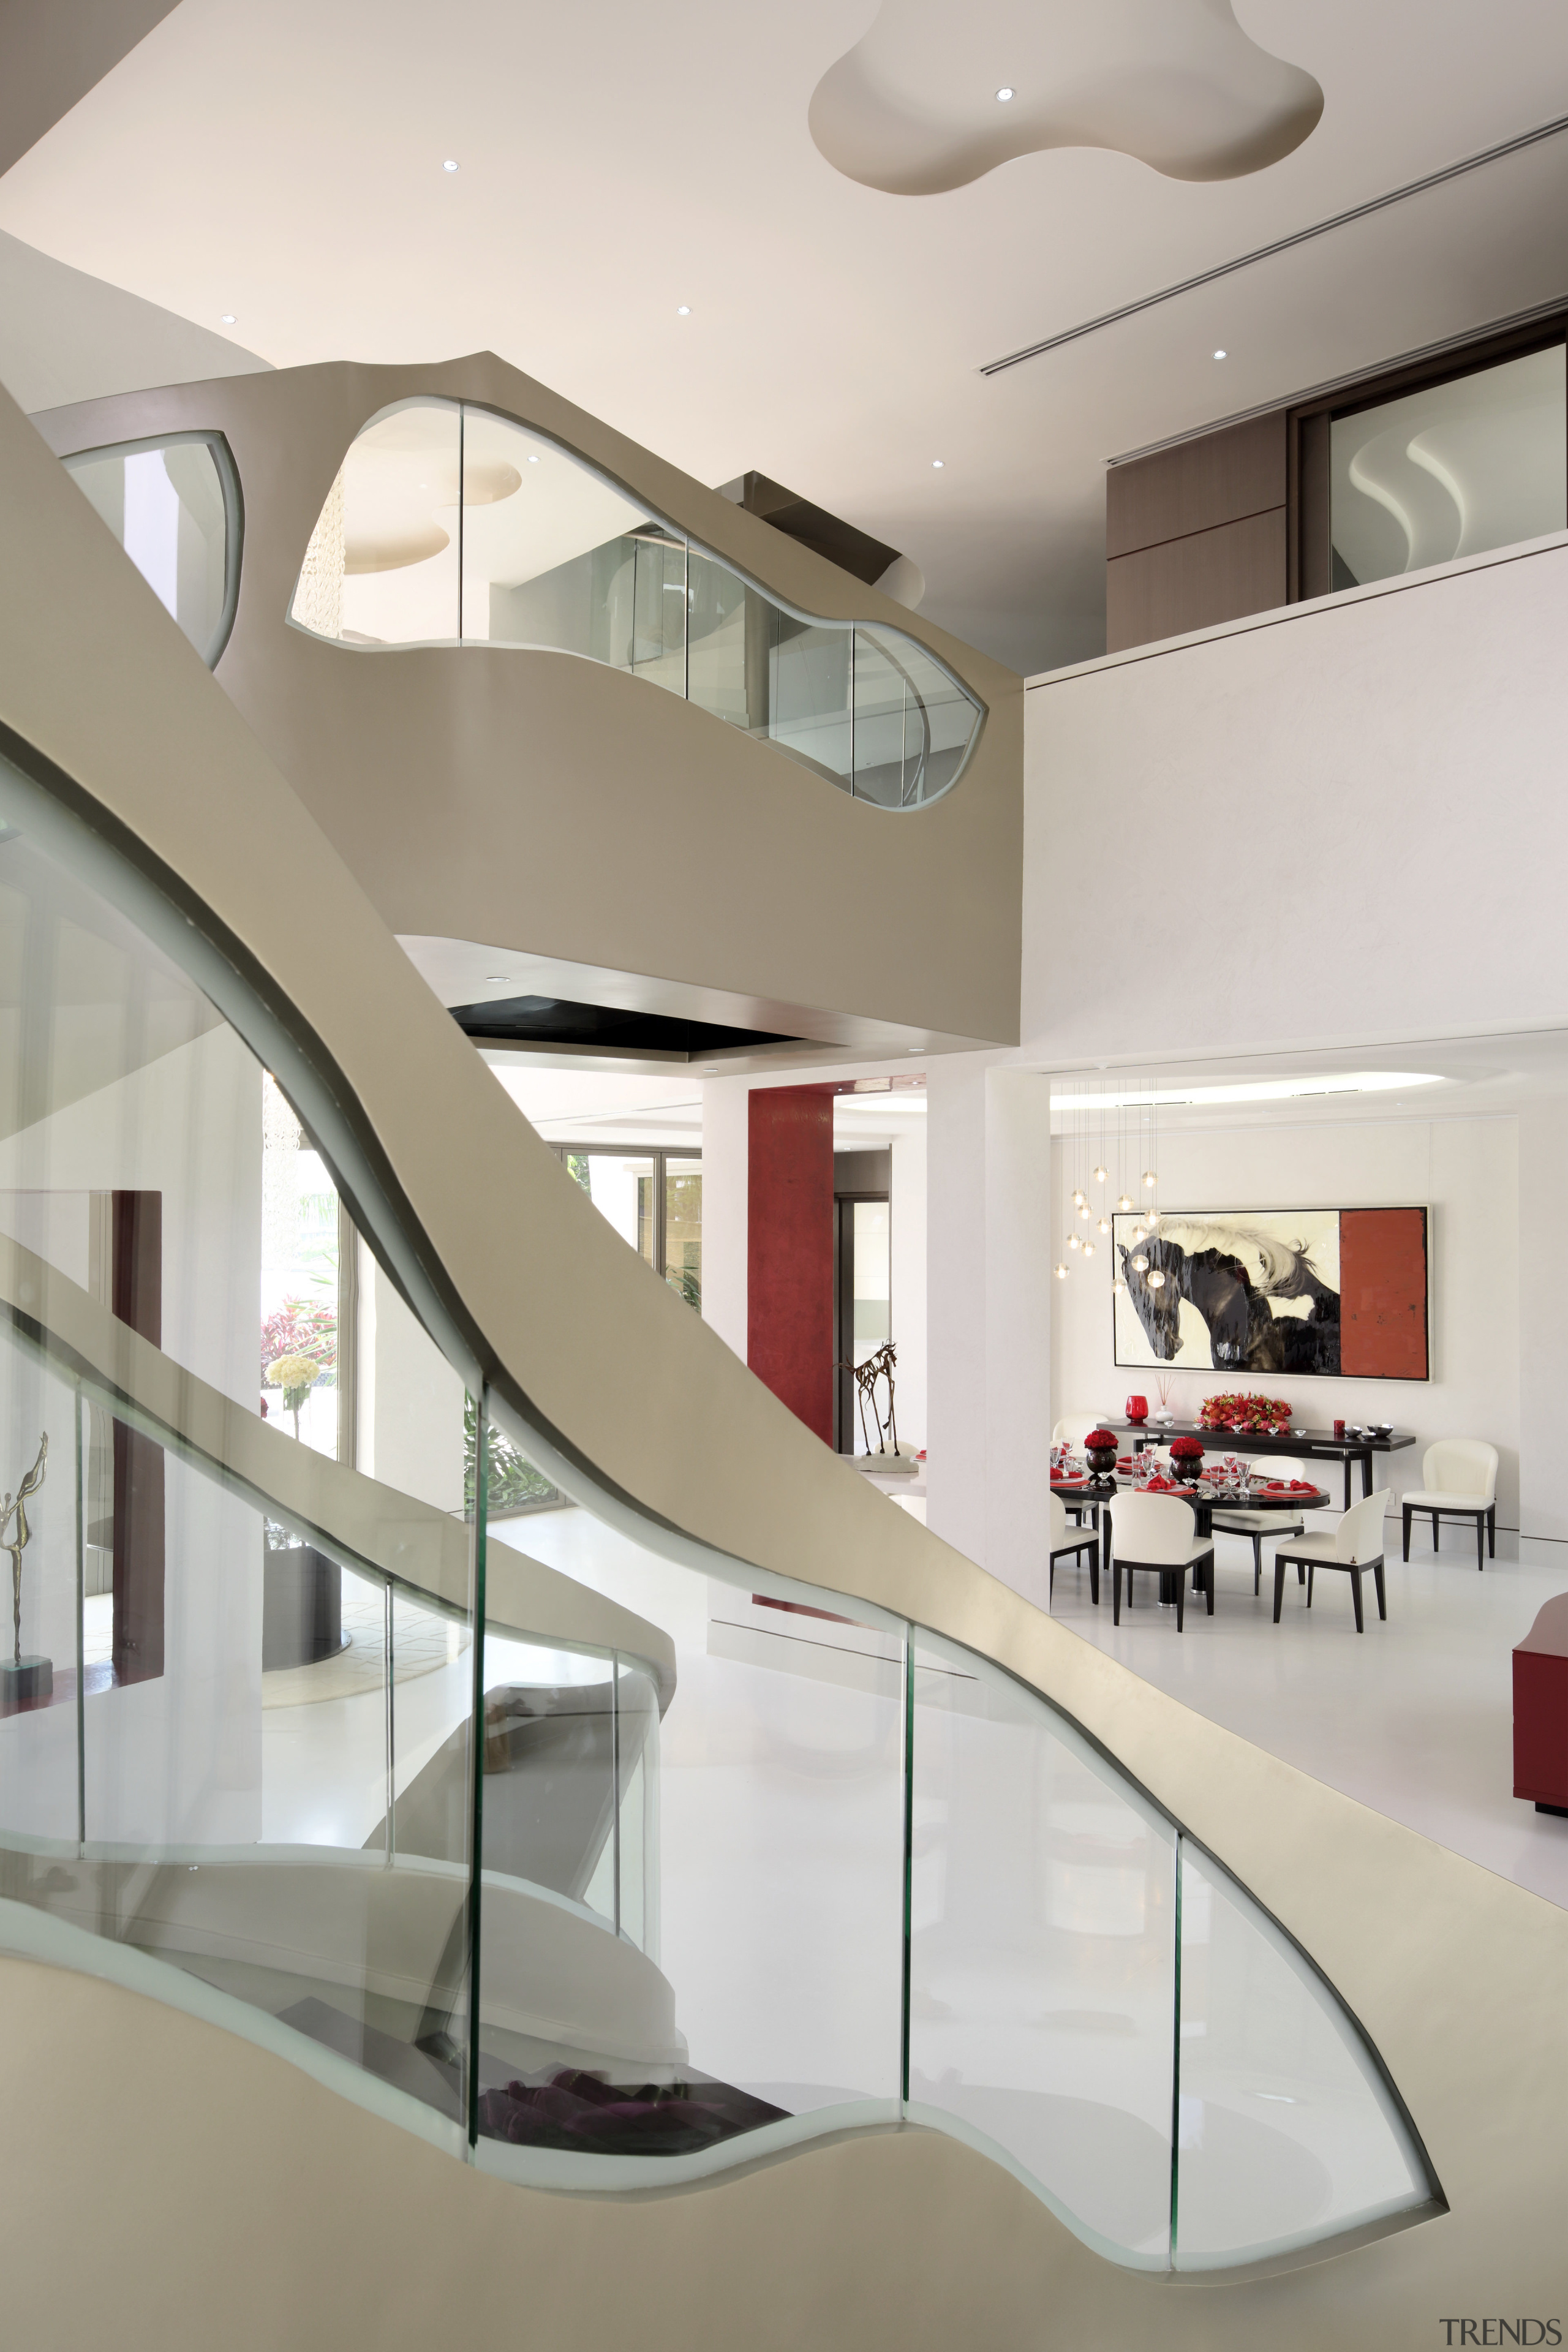 Templates for these organic glass balustrade windows were architecture, ceiling, daylighting, house, interior design, product design, stairs, table, gray